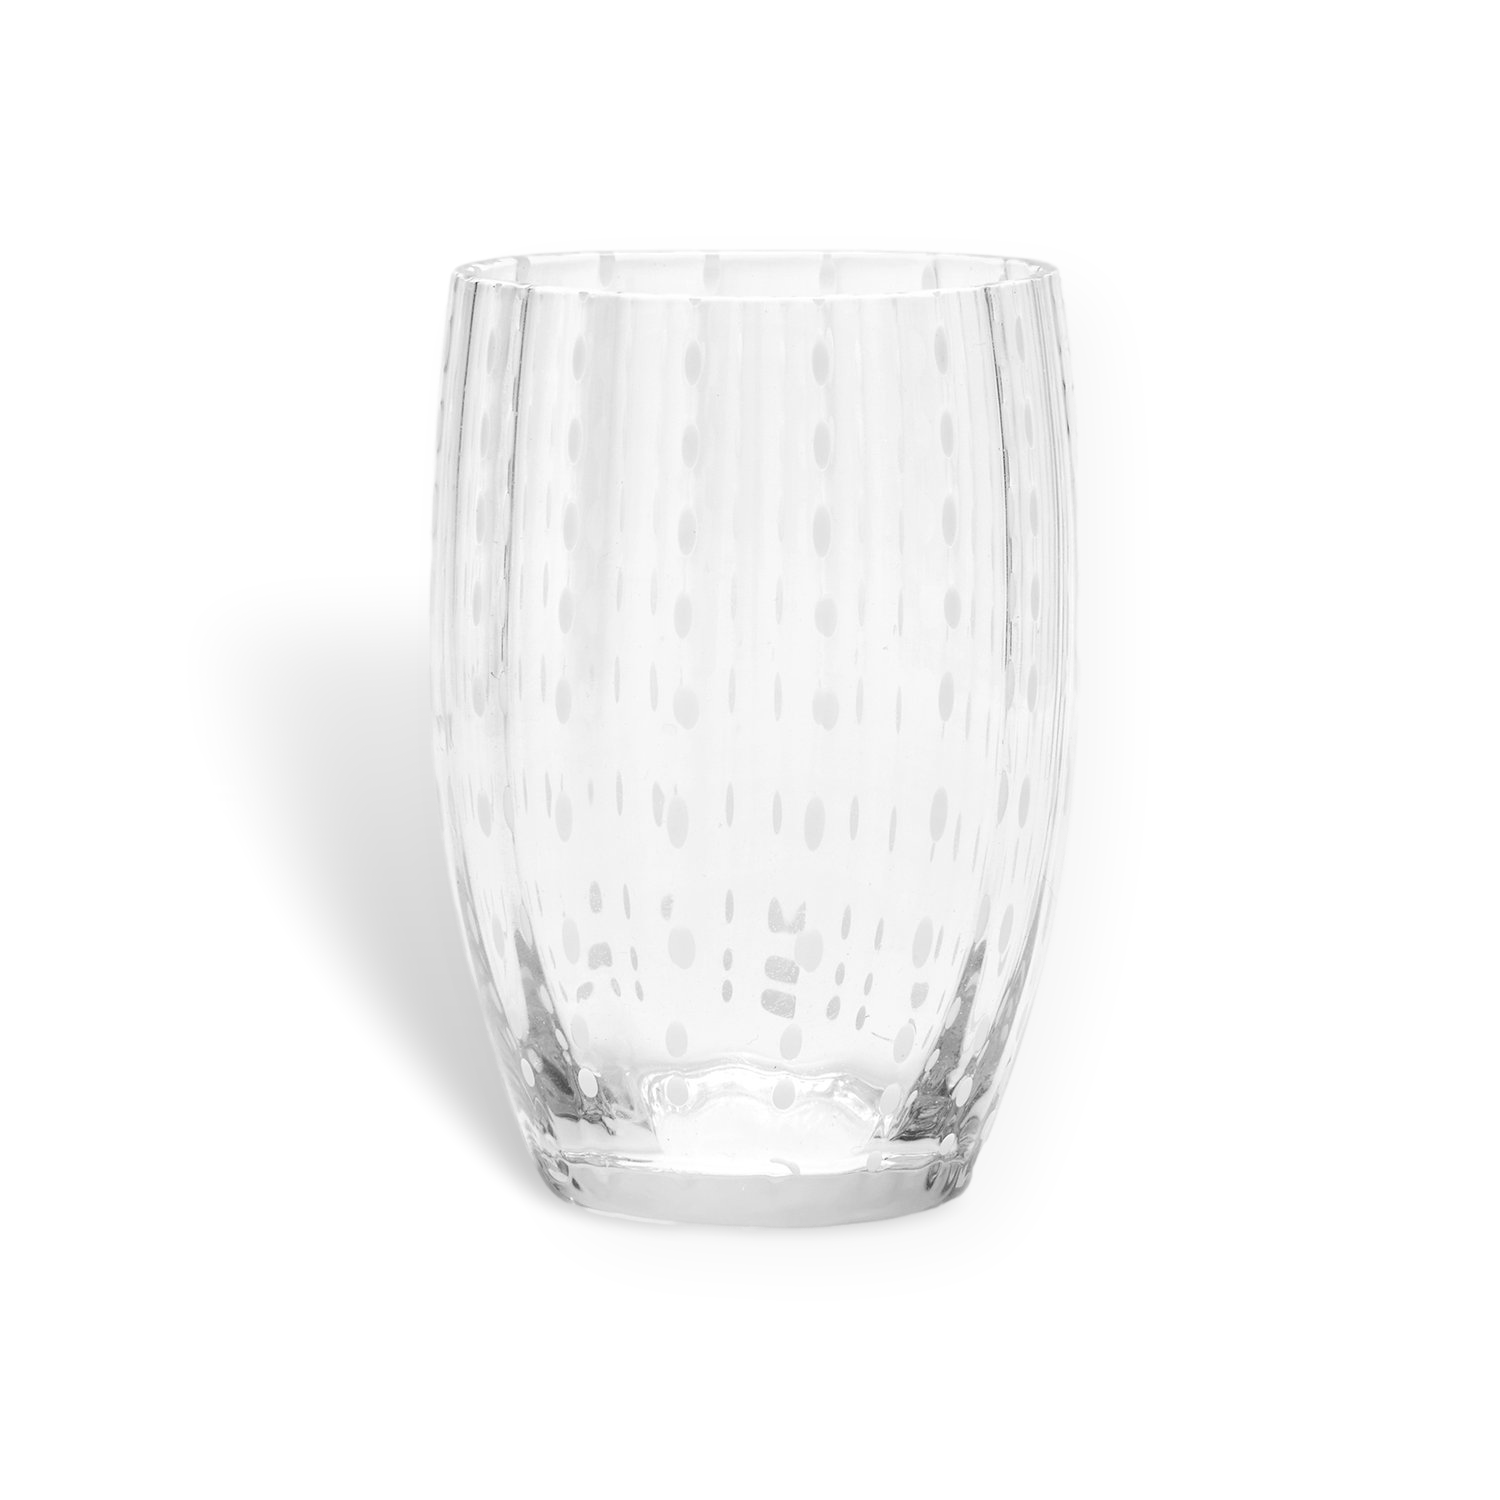 PERLE 'CLEAR' GLASS TUMBLER